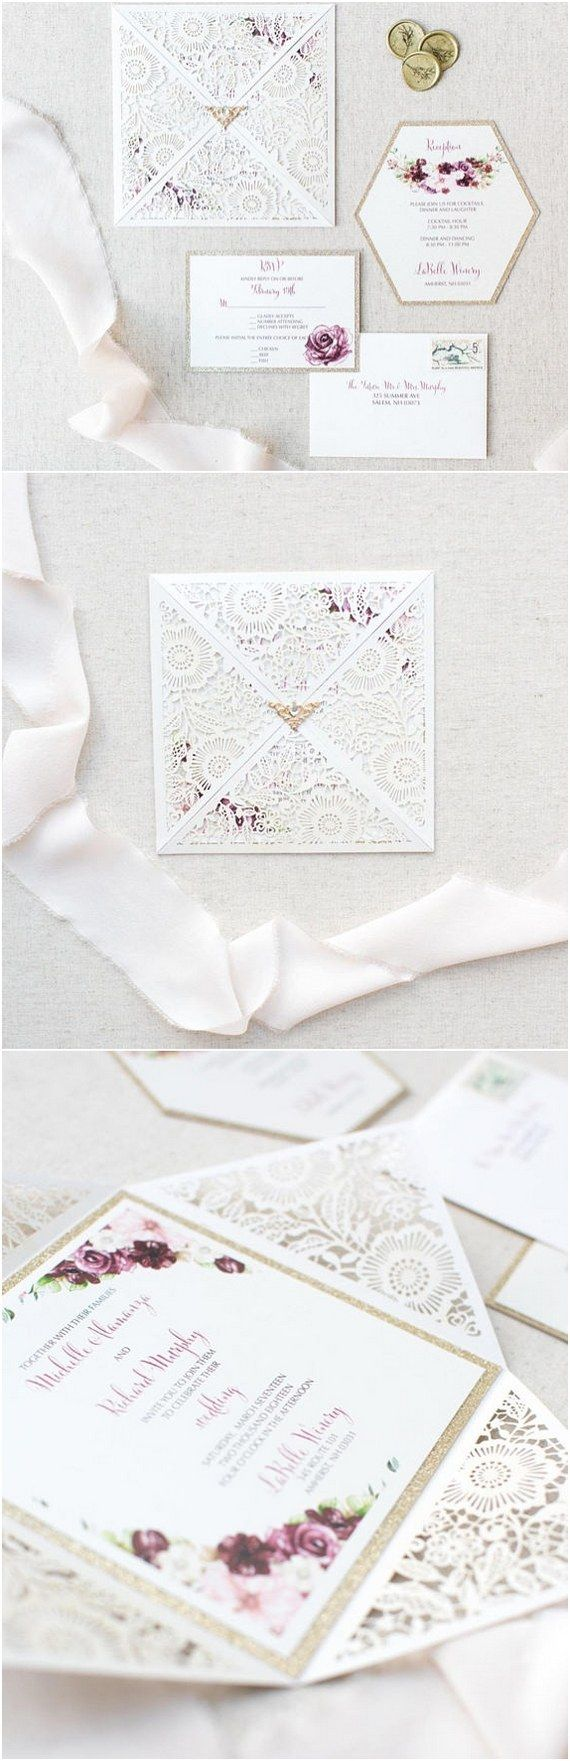 Top 10 Wedding Invitations from Etsy for 2018 | Wedding invitation ...